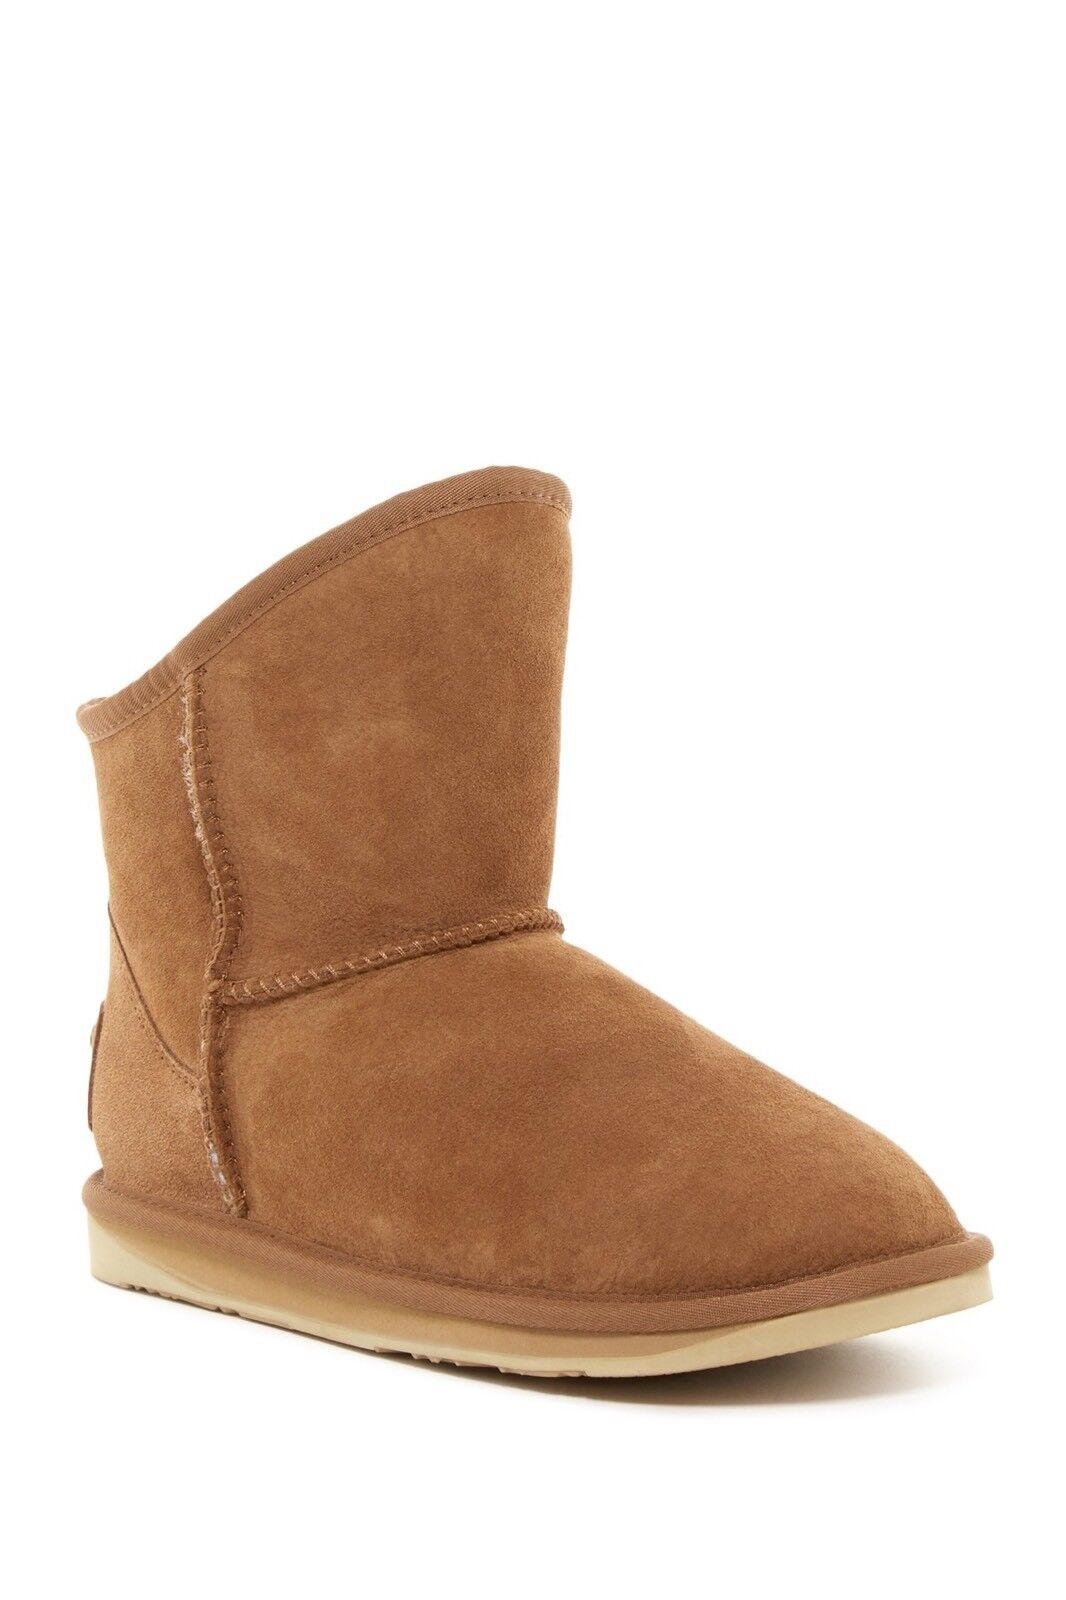 $190 NEW Australia Luxe Collective Sz 5 Cosy X Short Genuine Shearling Boots